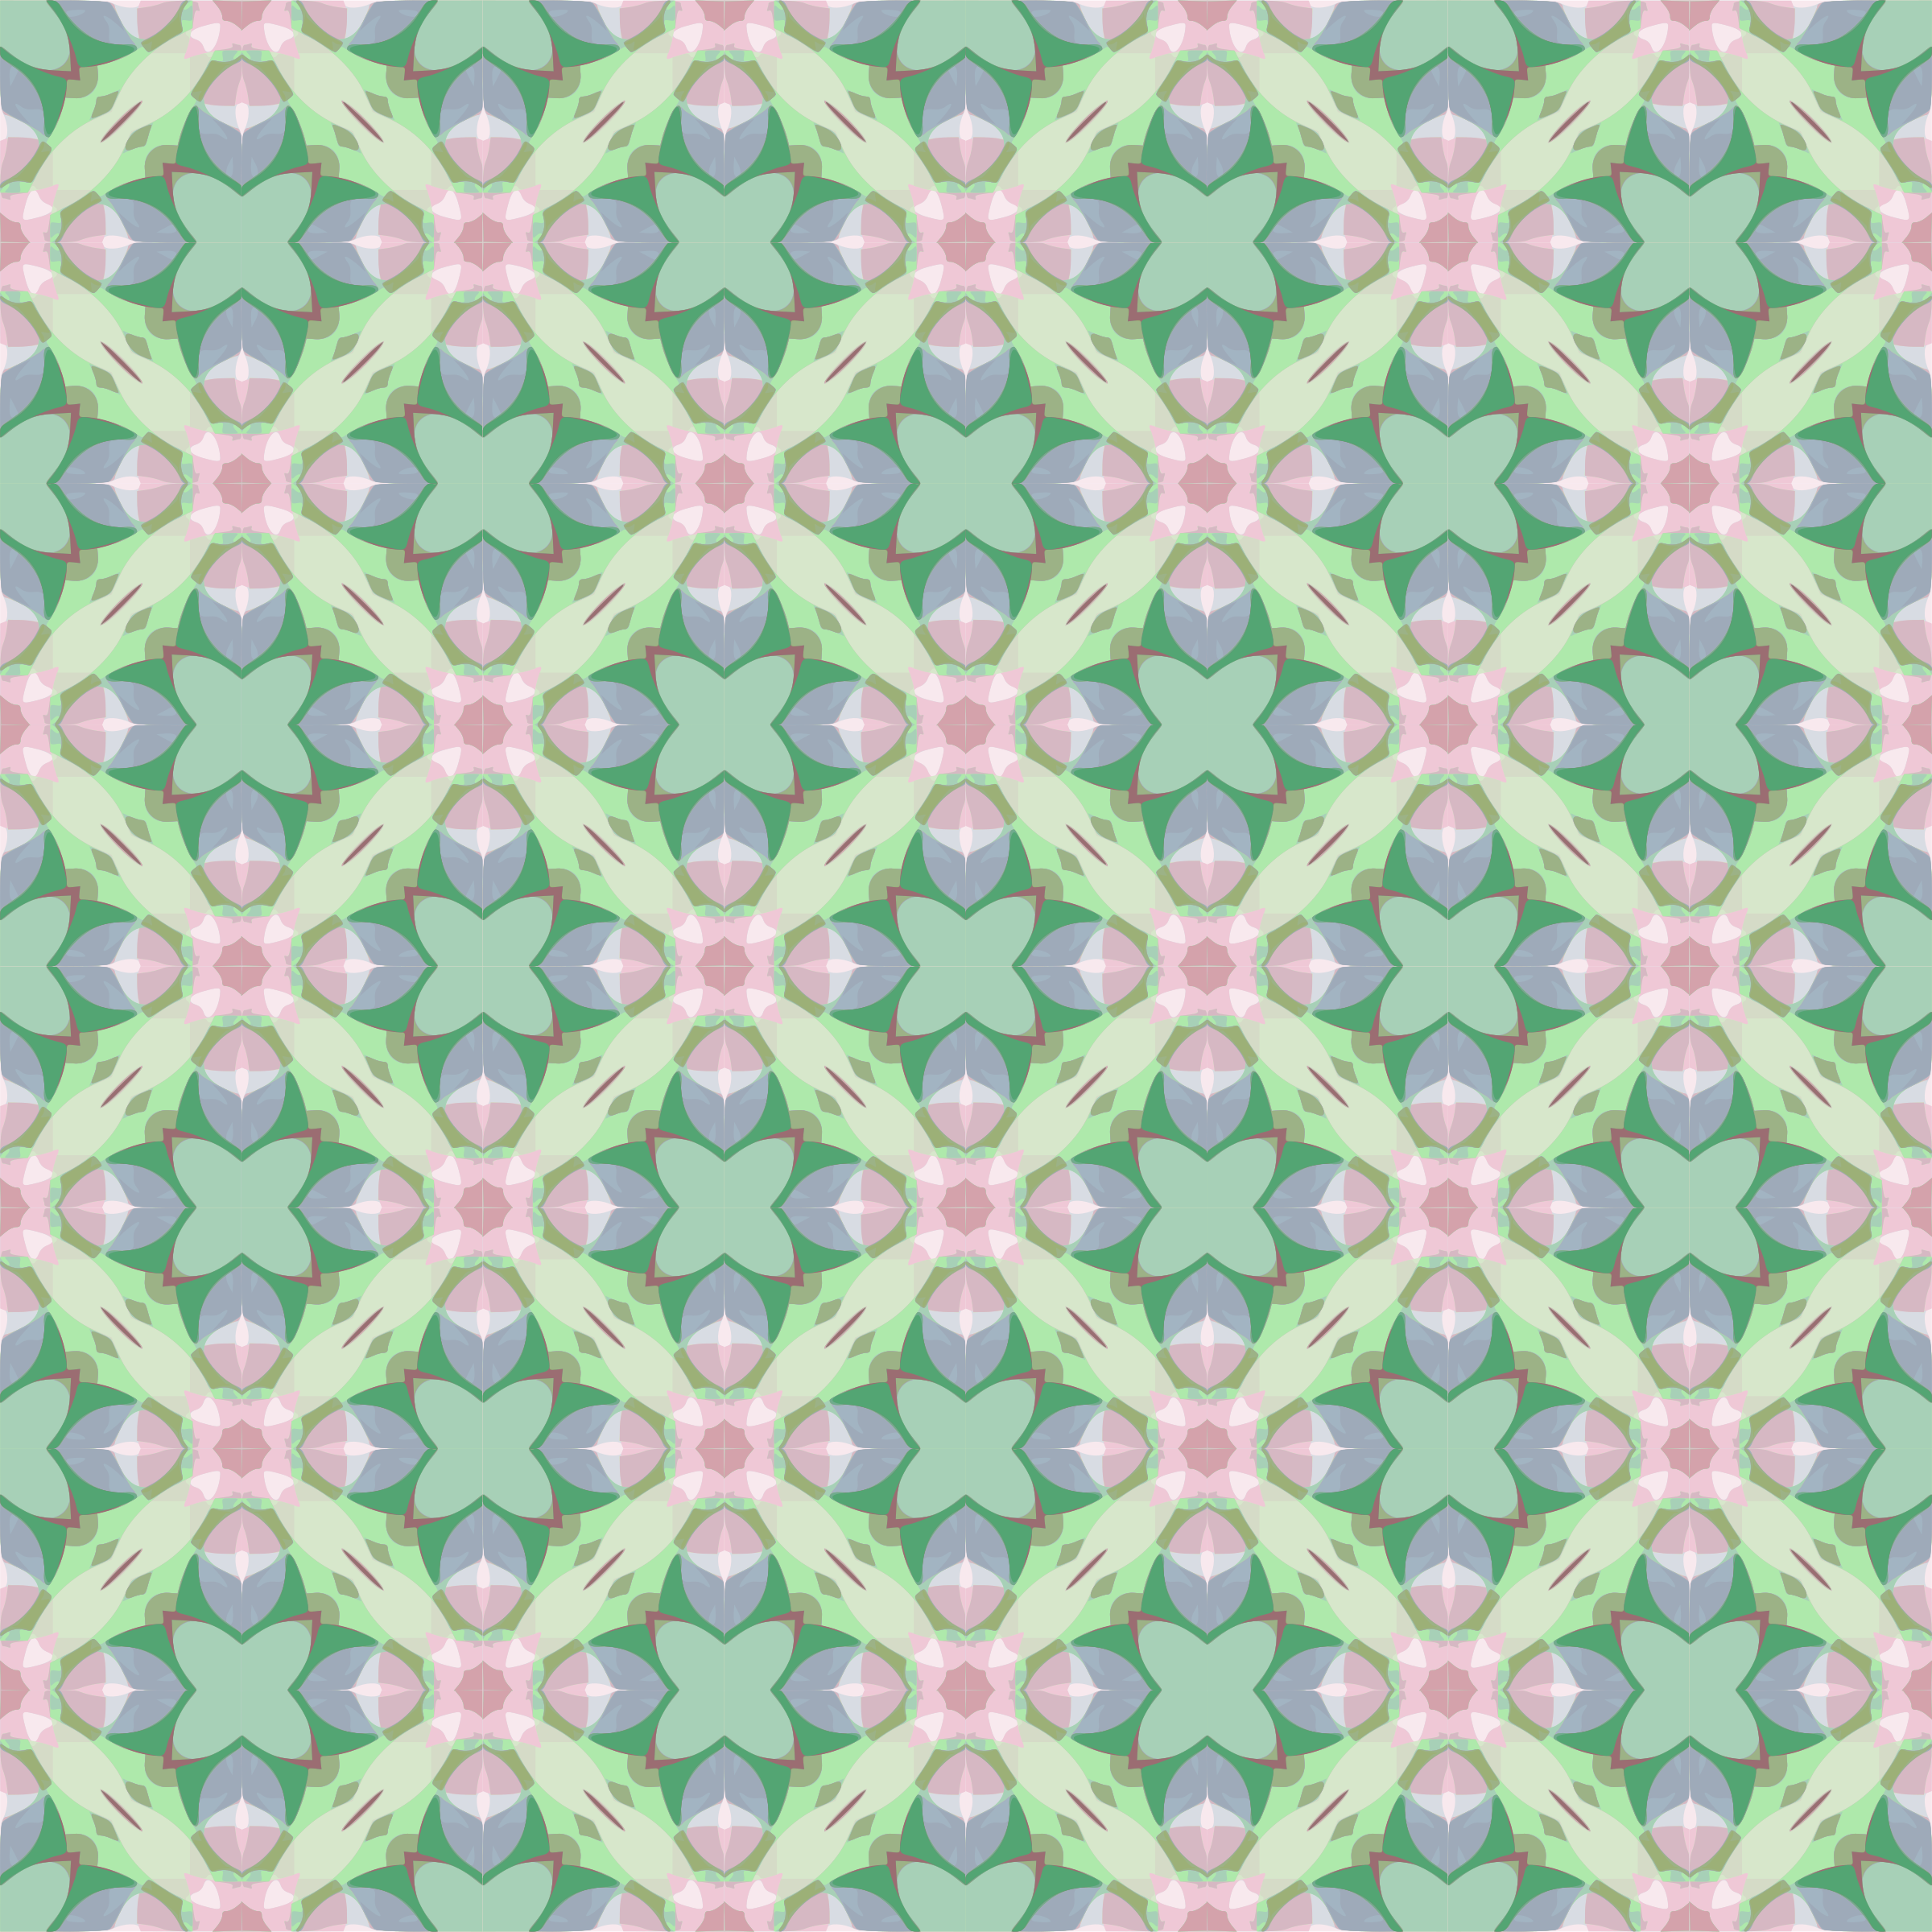 Background pattern 143 (colour 2) by Firkin